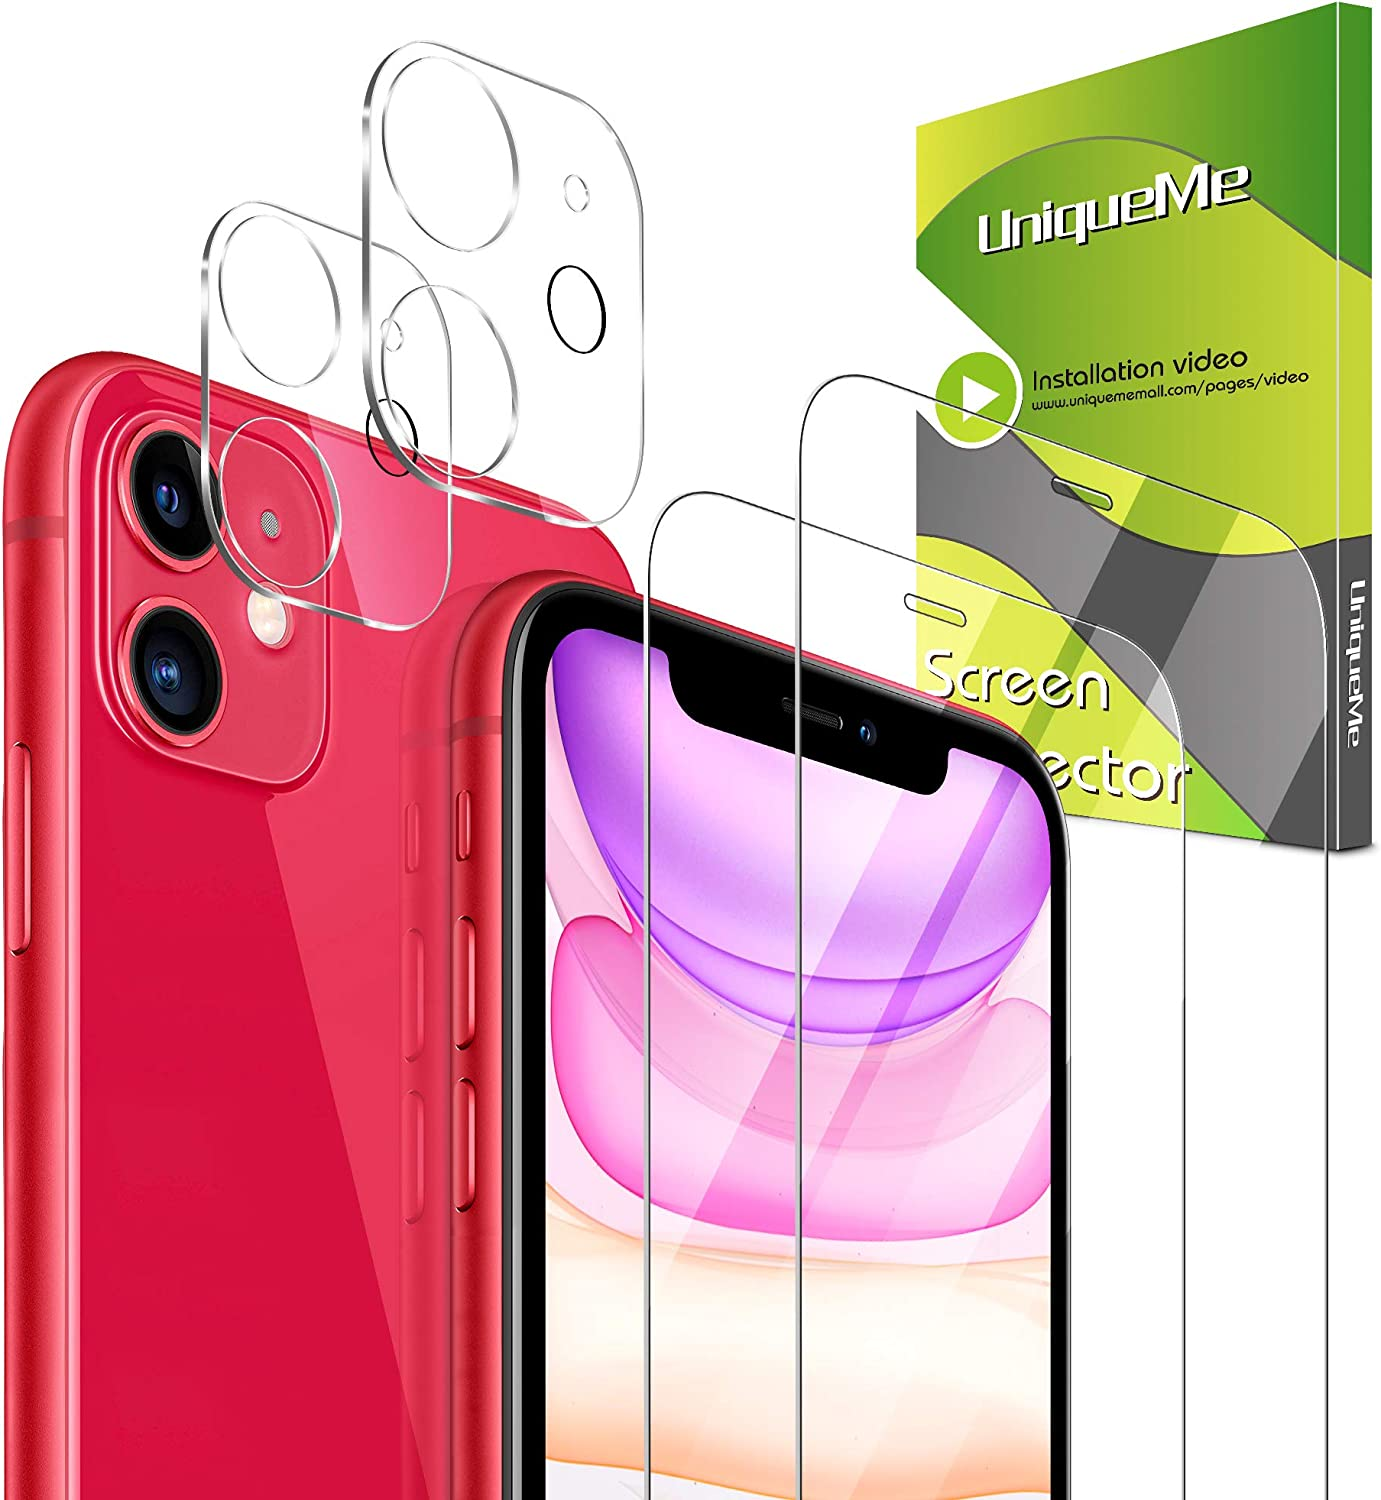 [4 Pack] UniqueMe 2 Pack Camera Lens Protector for iPhone 11 + 2 Pack Screen Protector for iPhone 11 [6.1 inch] Tempered Glass [NewVersion]AddCamerasFlashCircle